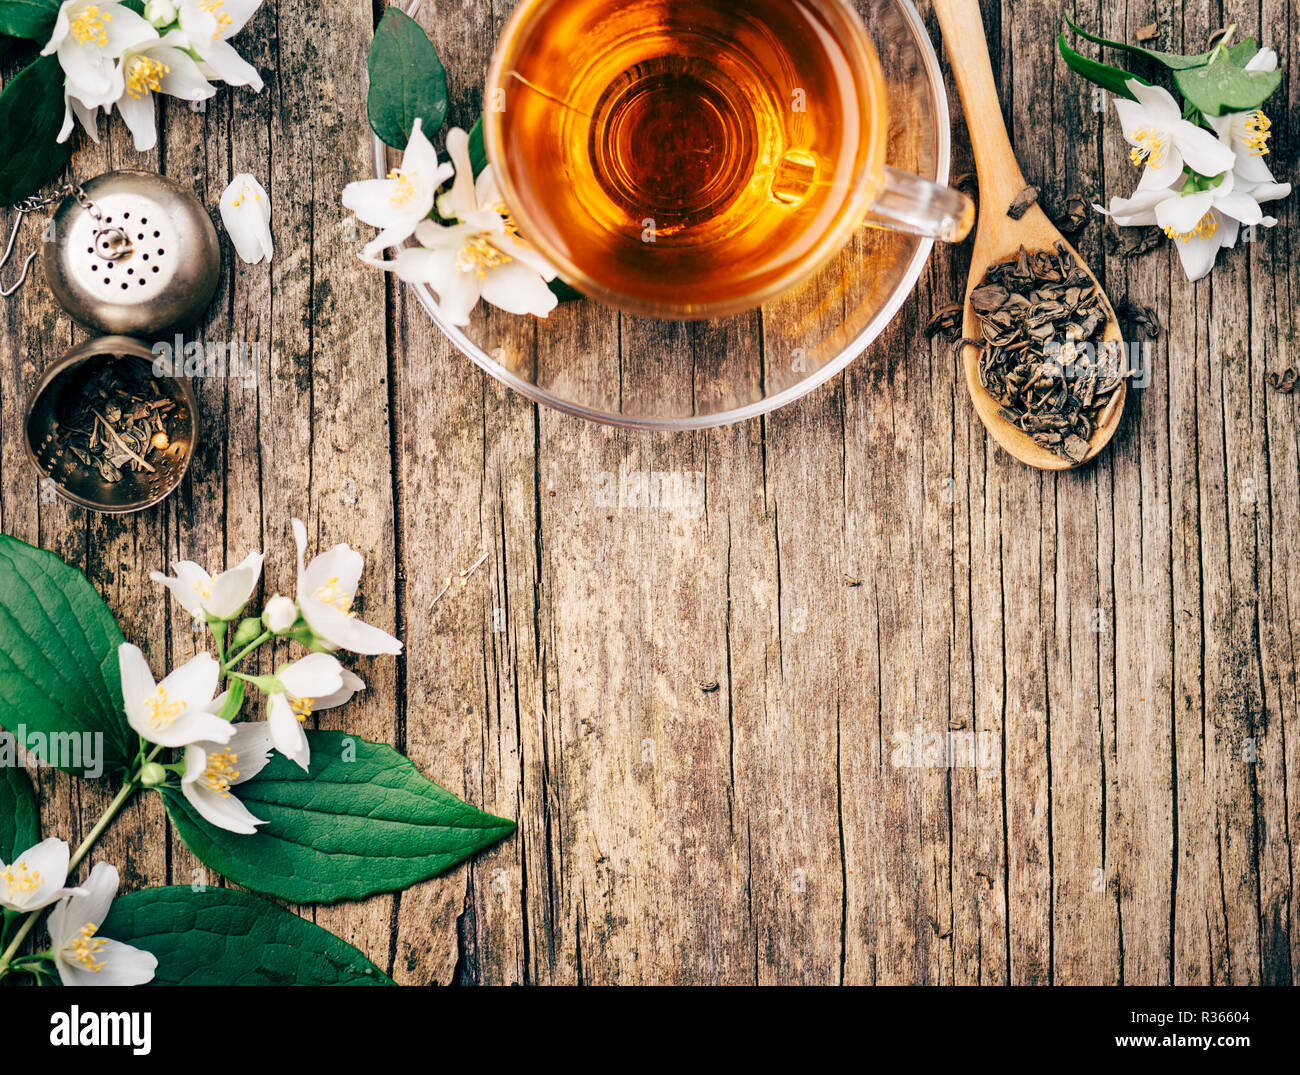 Top View Of Cup Of Asian Hot Green Tea And Jasmine Flower On Rustic